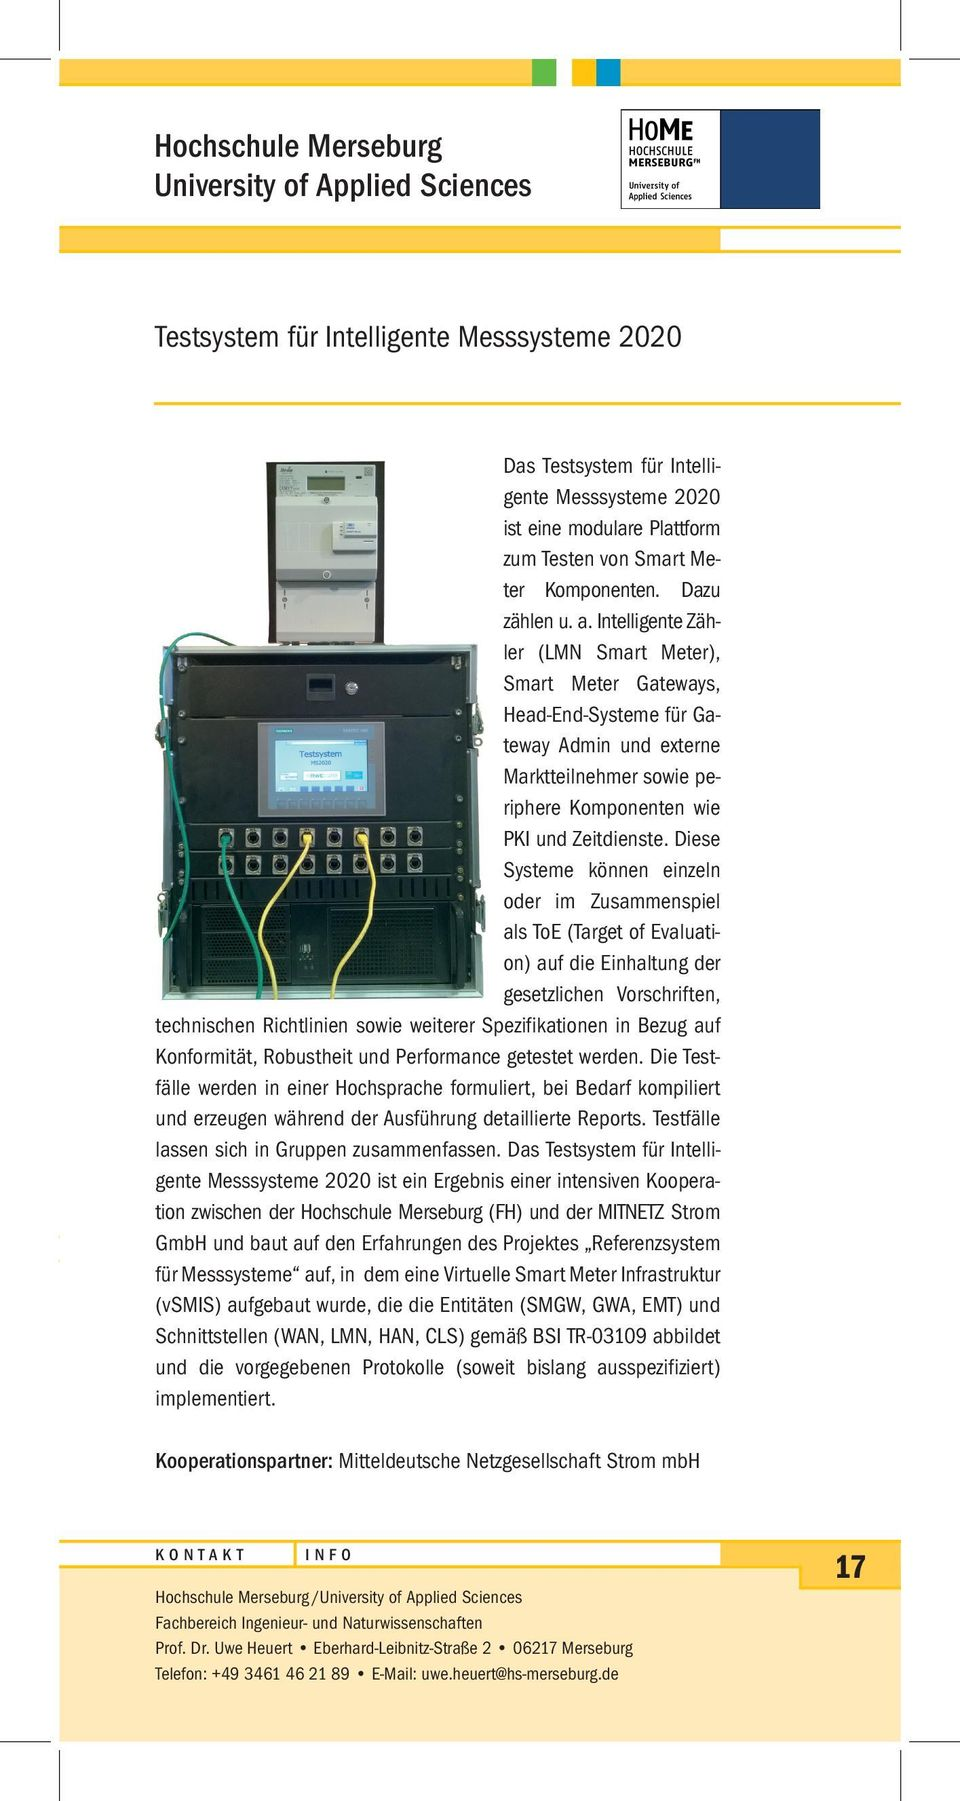 Intelligente Zähler (LMN Smart Meter), Smart Meter Gateways, Head-End-Systeme für Gateway Admin und externe Marktteilnehmer sowie periphere Komponenten wie PKI und Zeitdienste.